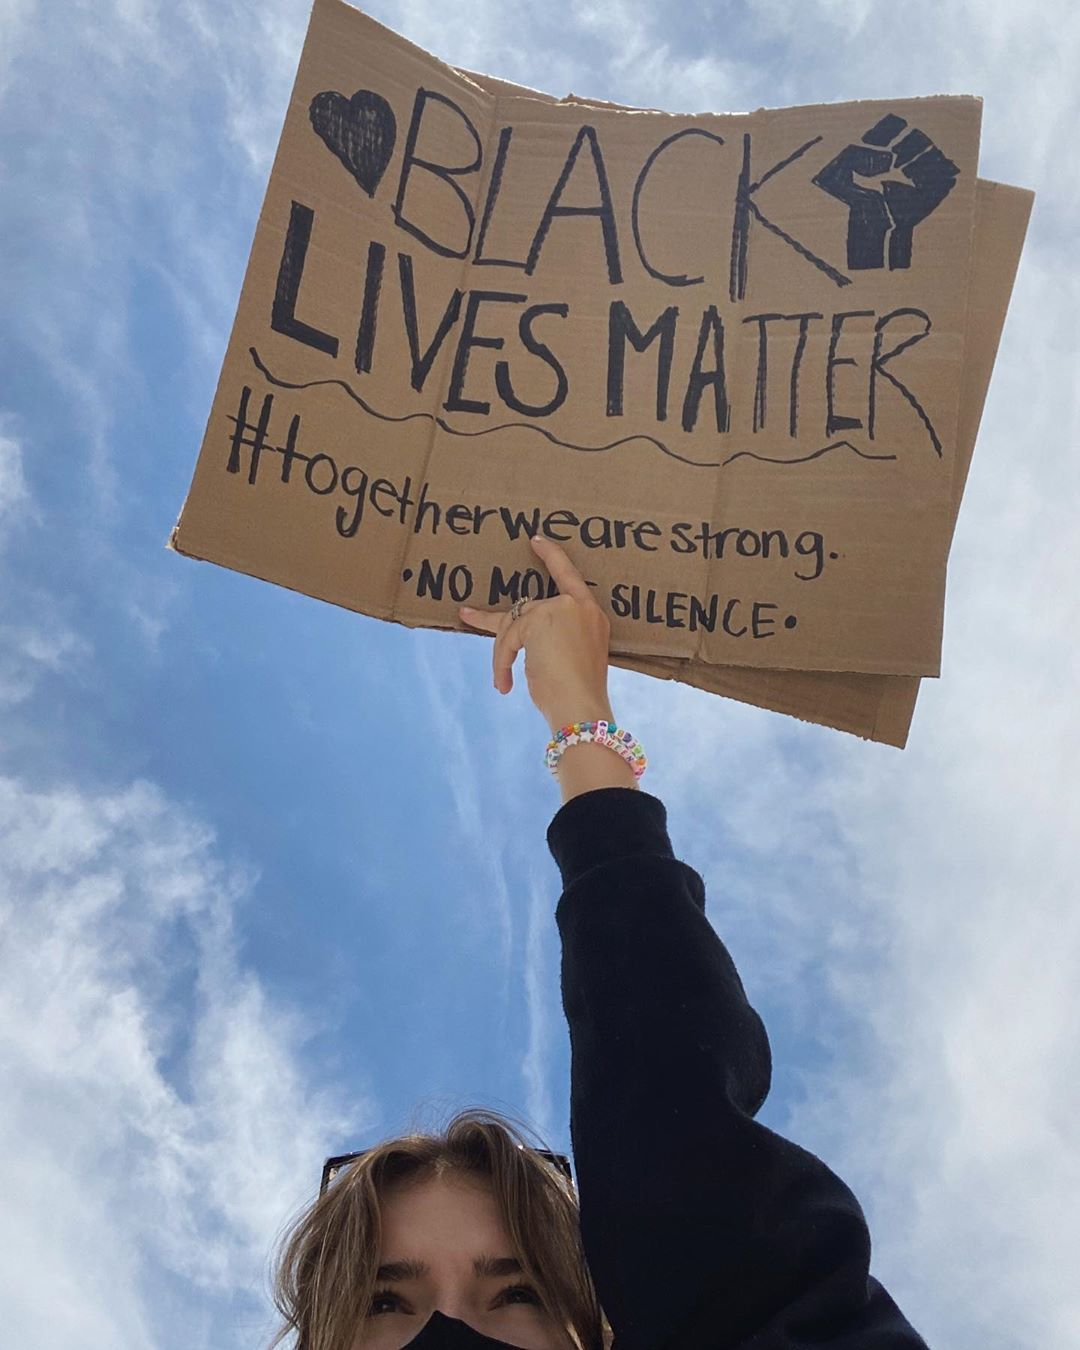 Alexis Jayde Burnett On Instagram Yesterday I Went To 2 Peaceful Protests In My Area The Entire Time I Had Chil Black Lives Matter Protest Signs Black Lives